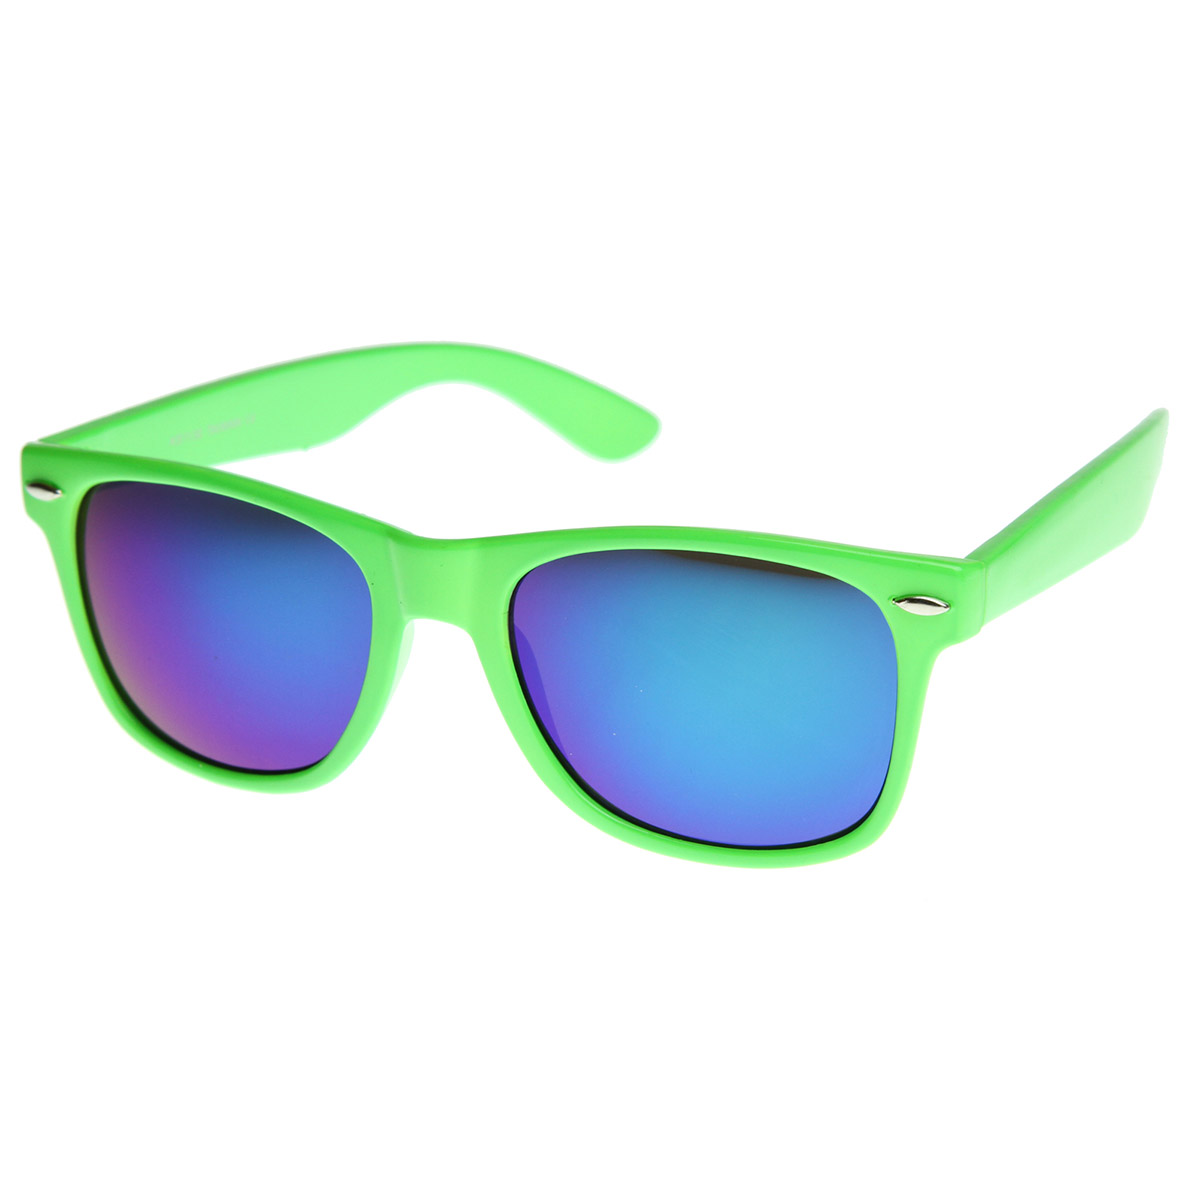 Retro-Bright-Horn-Rimmed-Sunglasses-with-Colorful-Mirrored-Lenses-UV400